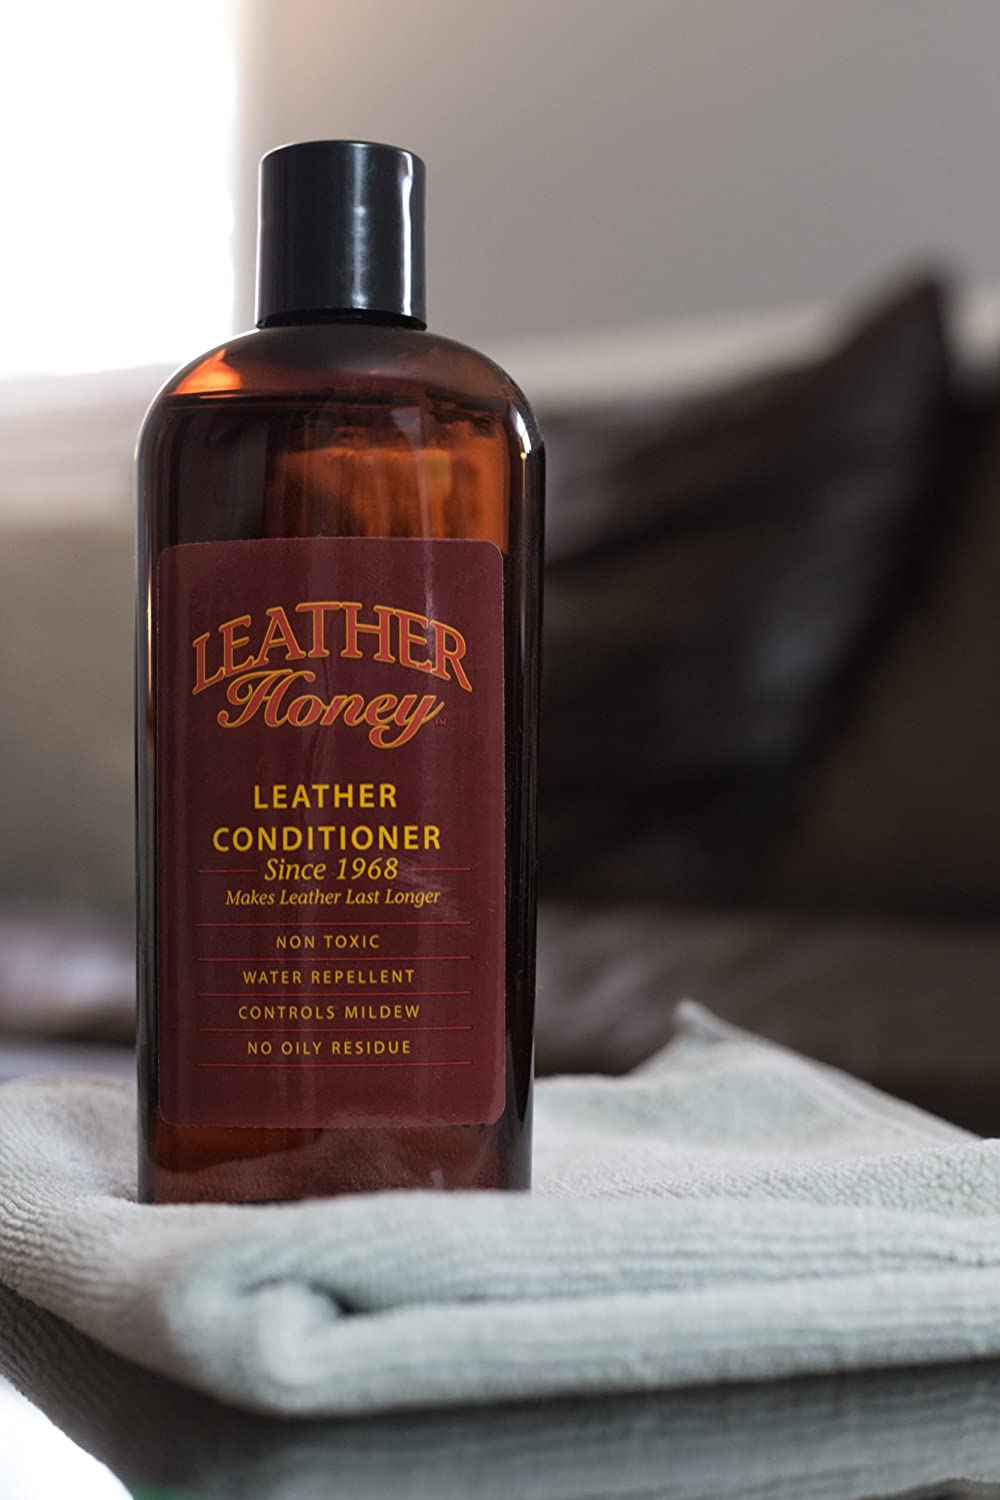 Leather Honey Leather Conditioner Leather Honey Leather Conditioner new pictures